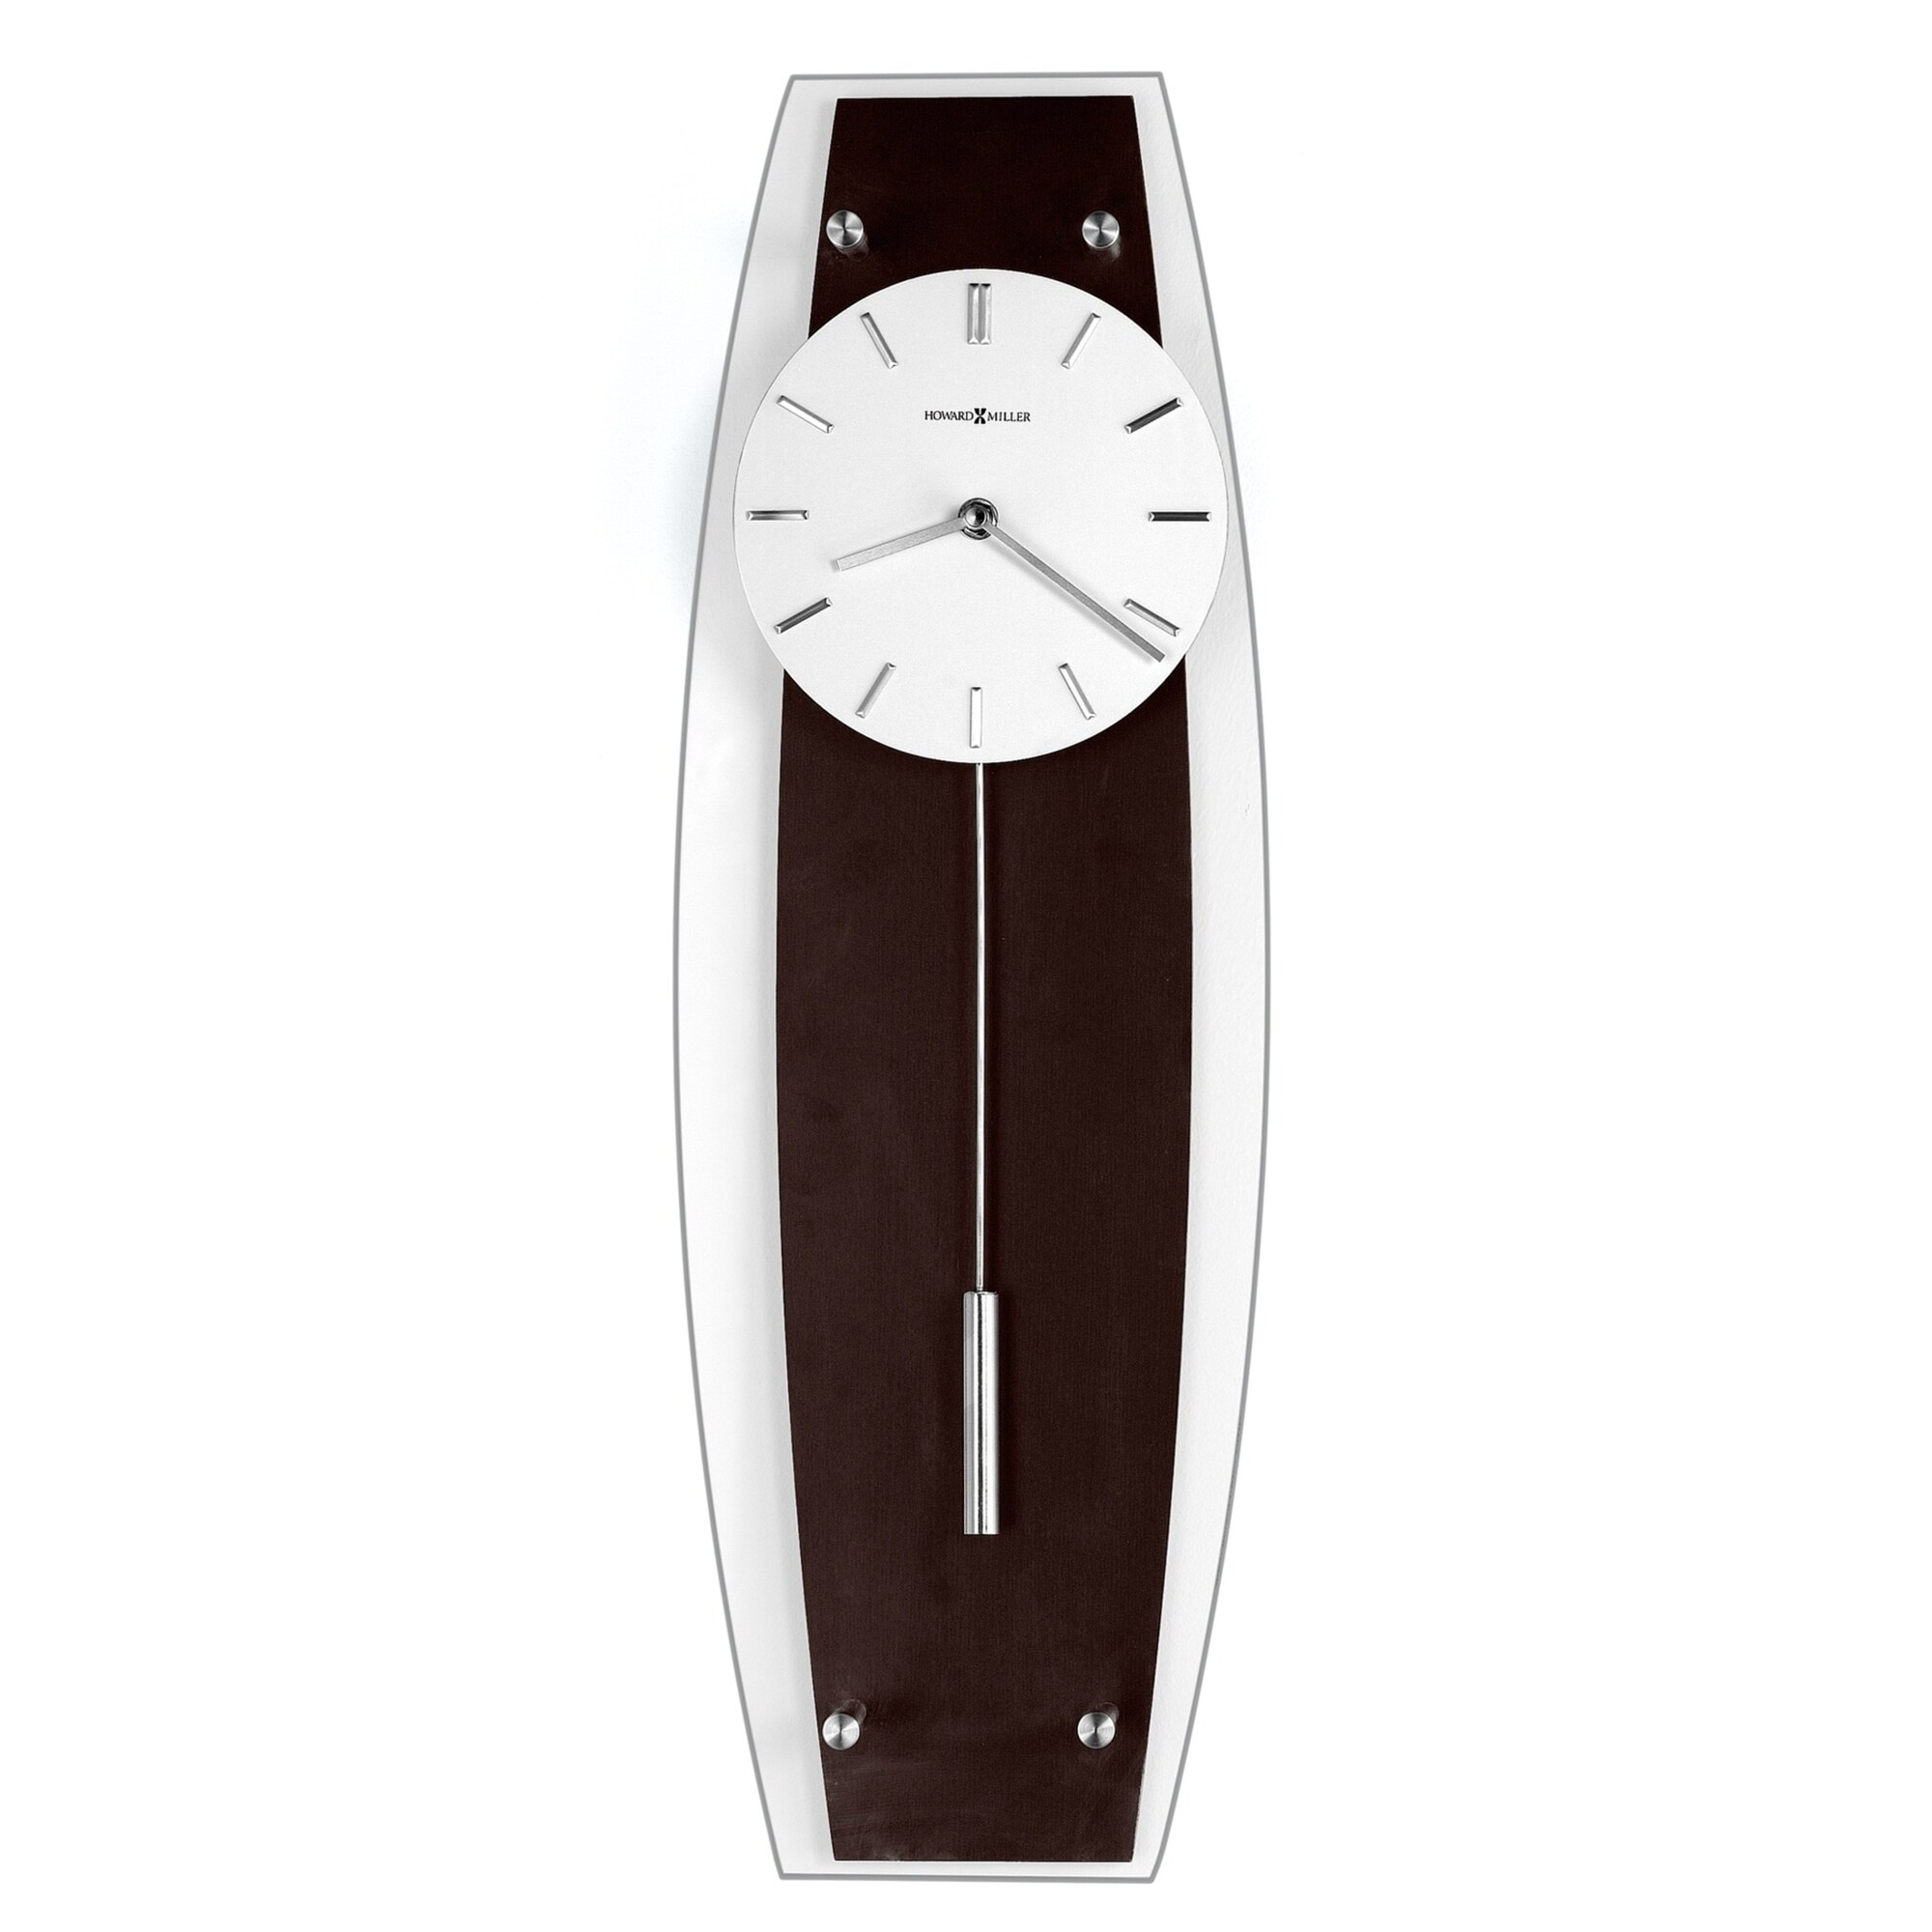 Howard Miller Cyrus Chic, Sleek, Contemporary Modern, Transitional Style  Wall Clock with Pendulum, Reloj De Pared